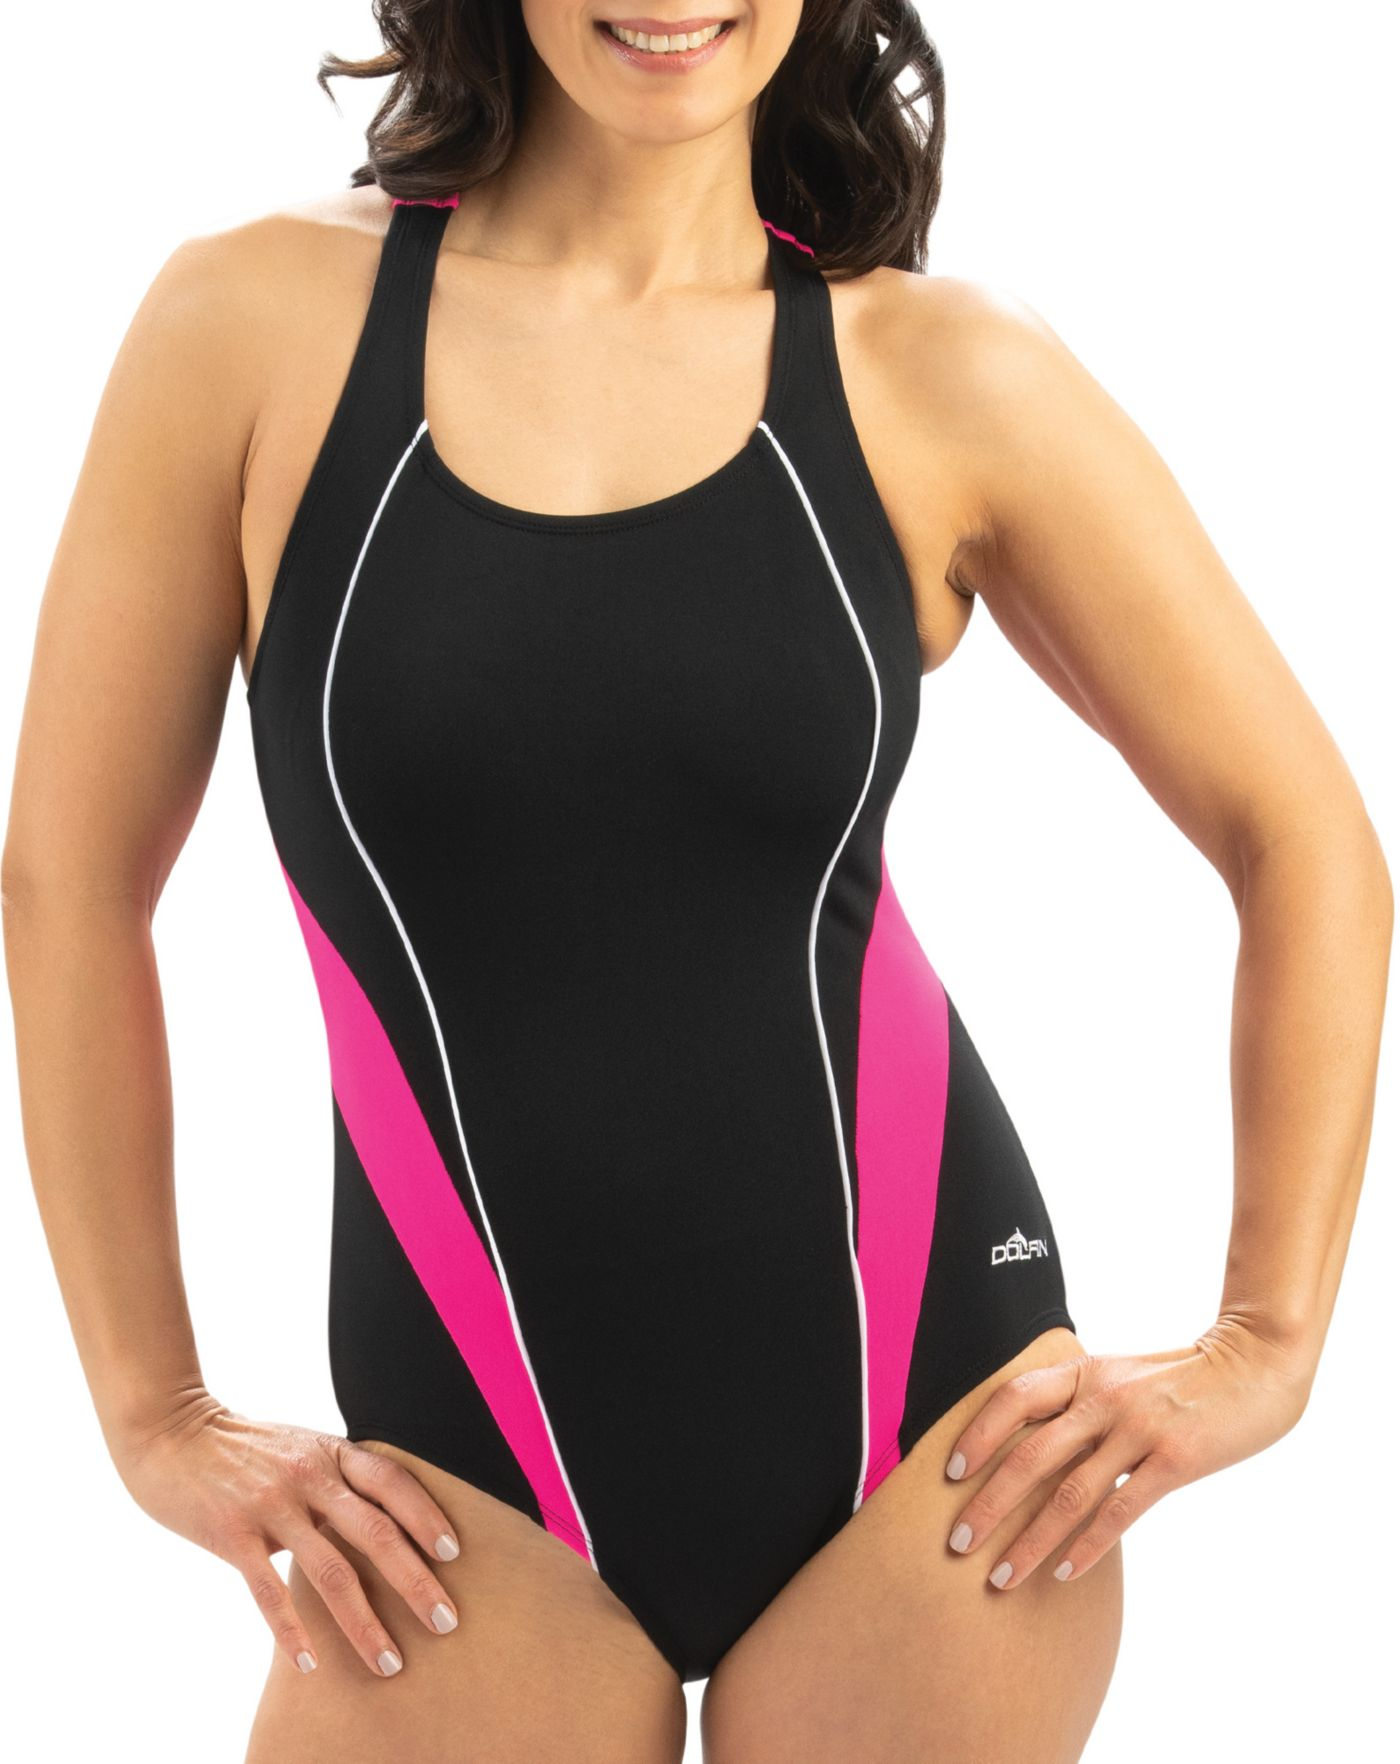 Dolfin Women's Aquashape Sporty Crossover One Piece Swimsuit